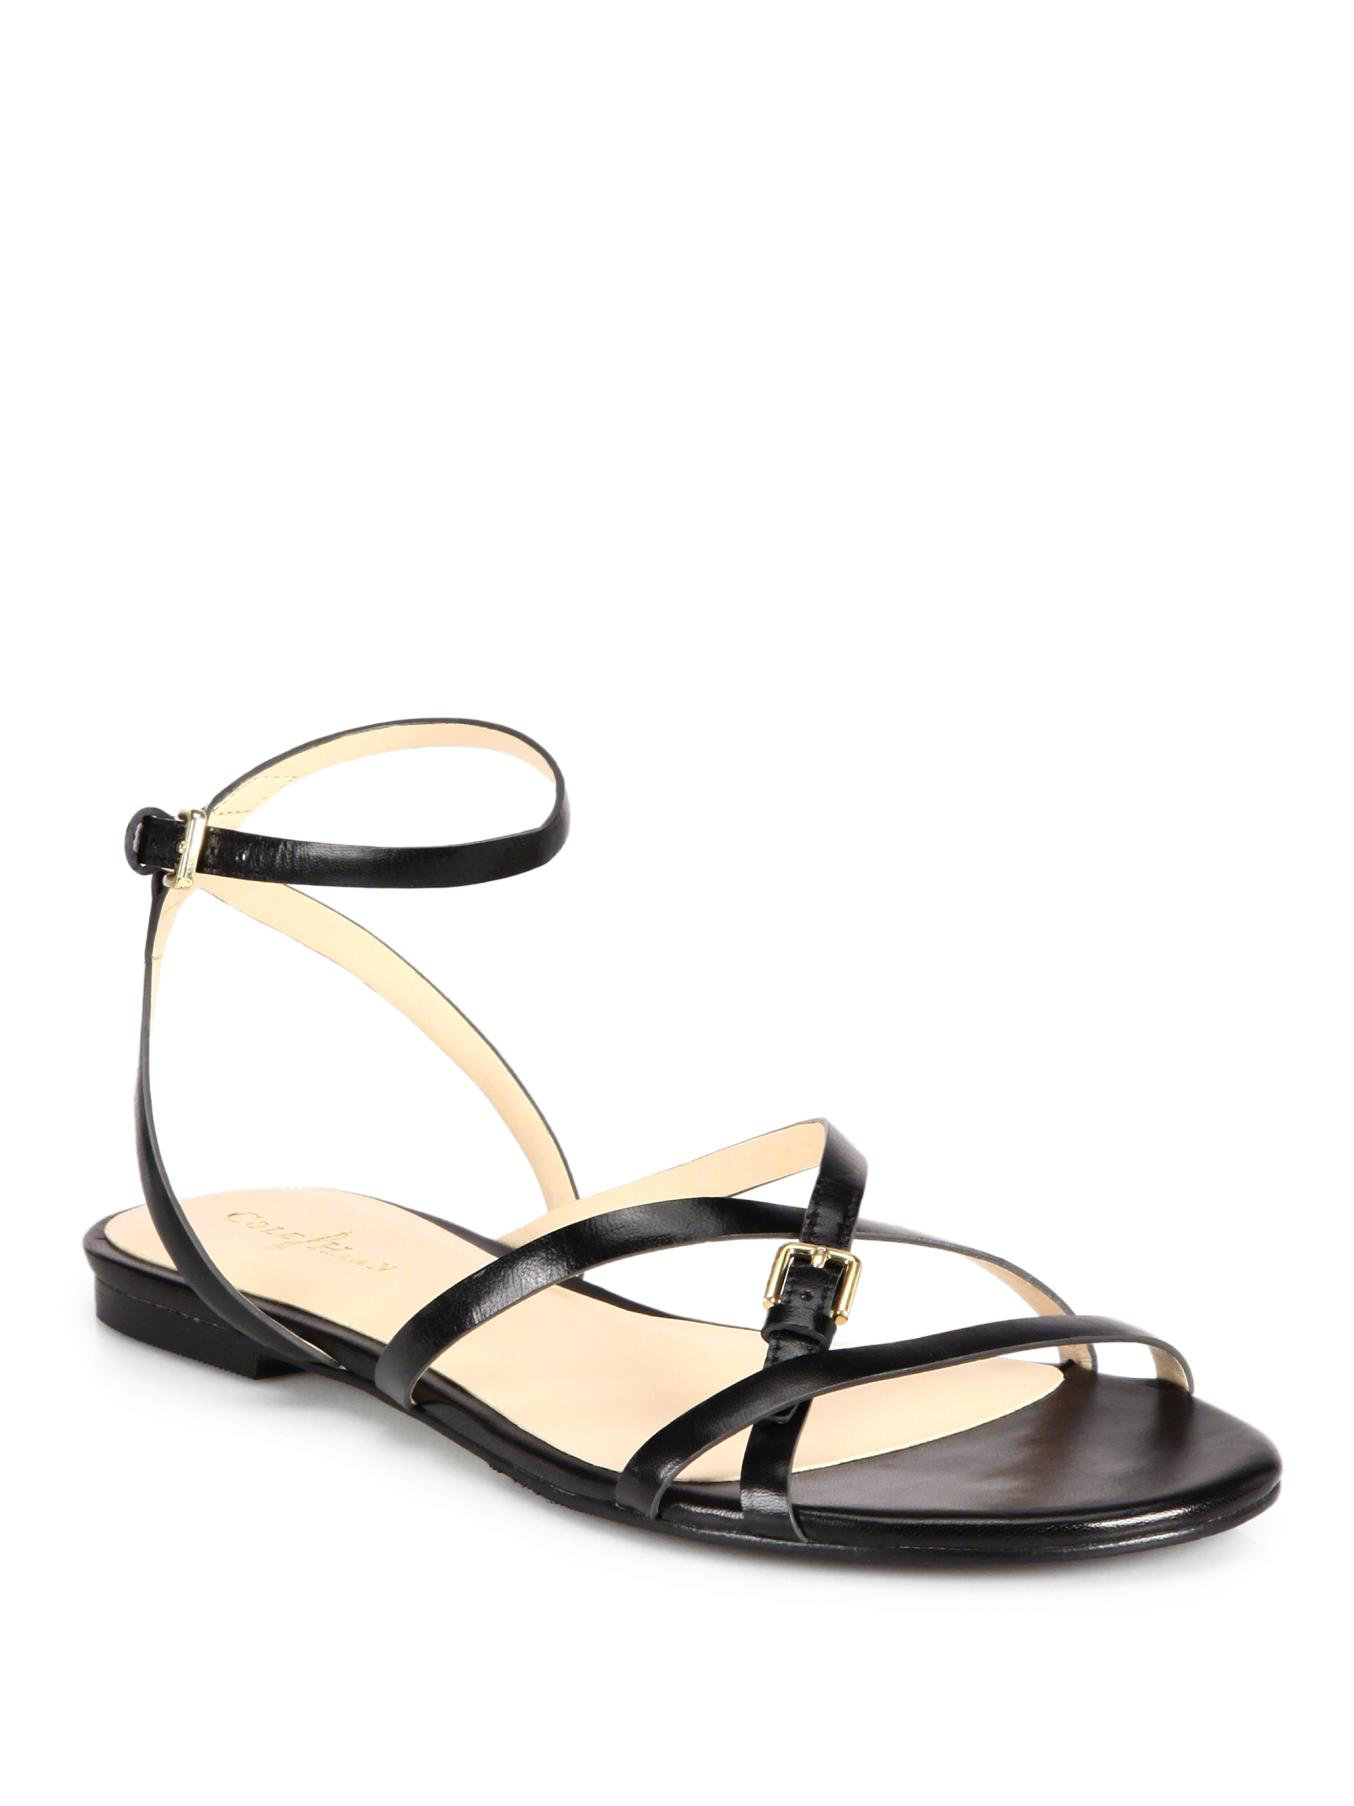 6d70bcc40ee Lyst - Cole Haan Jensen Strappy Leather Sandals in Black